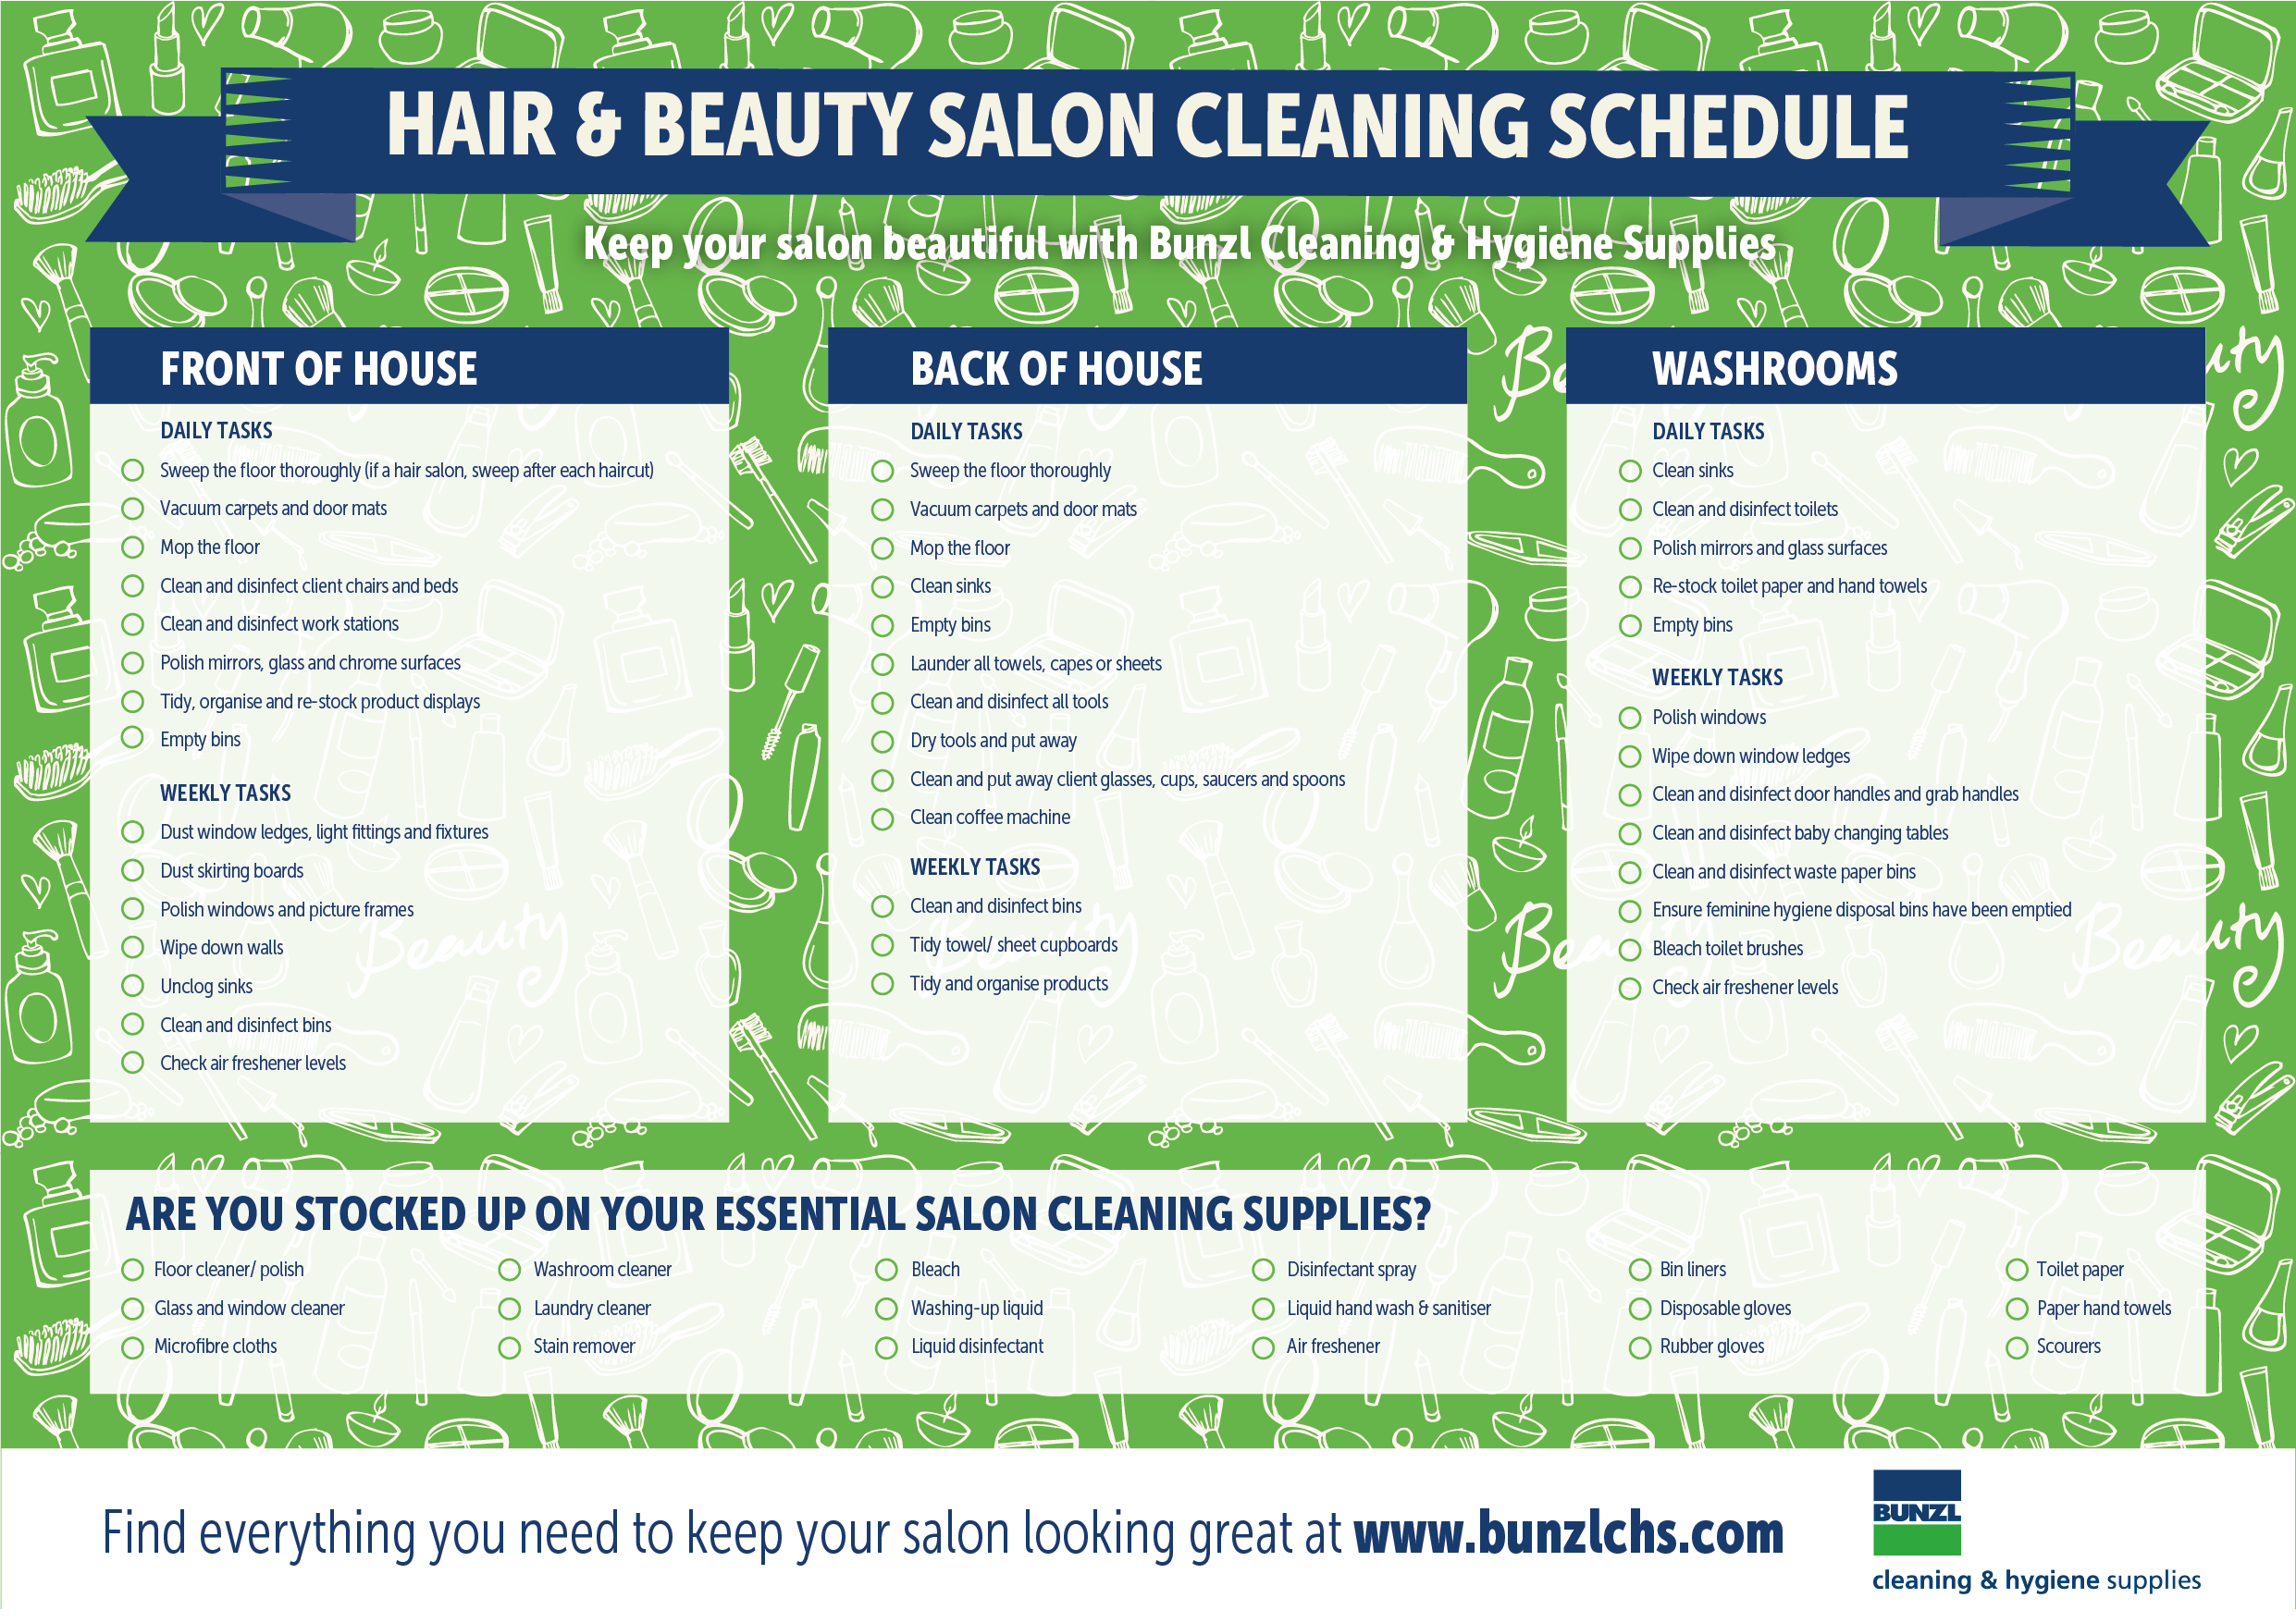 Download Cleaning Schedule And Supply Template For Hair